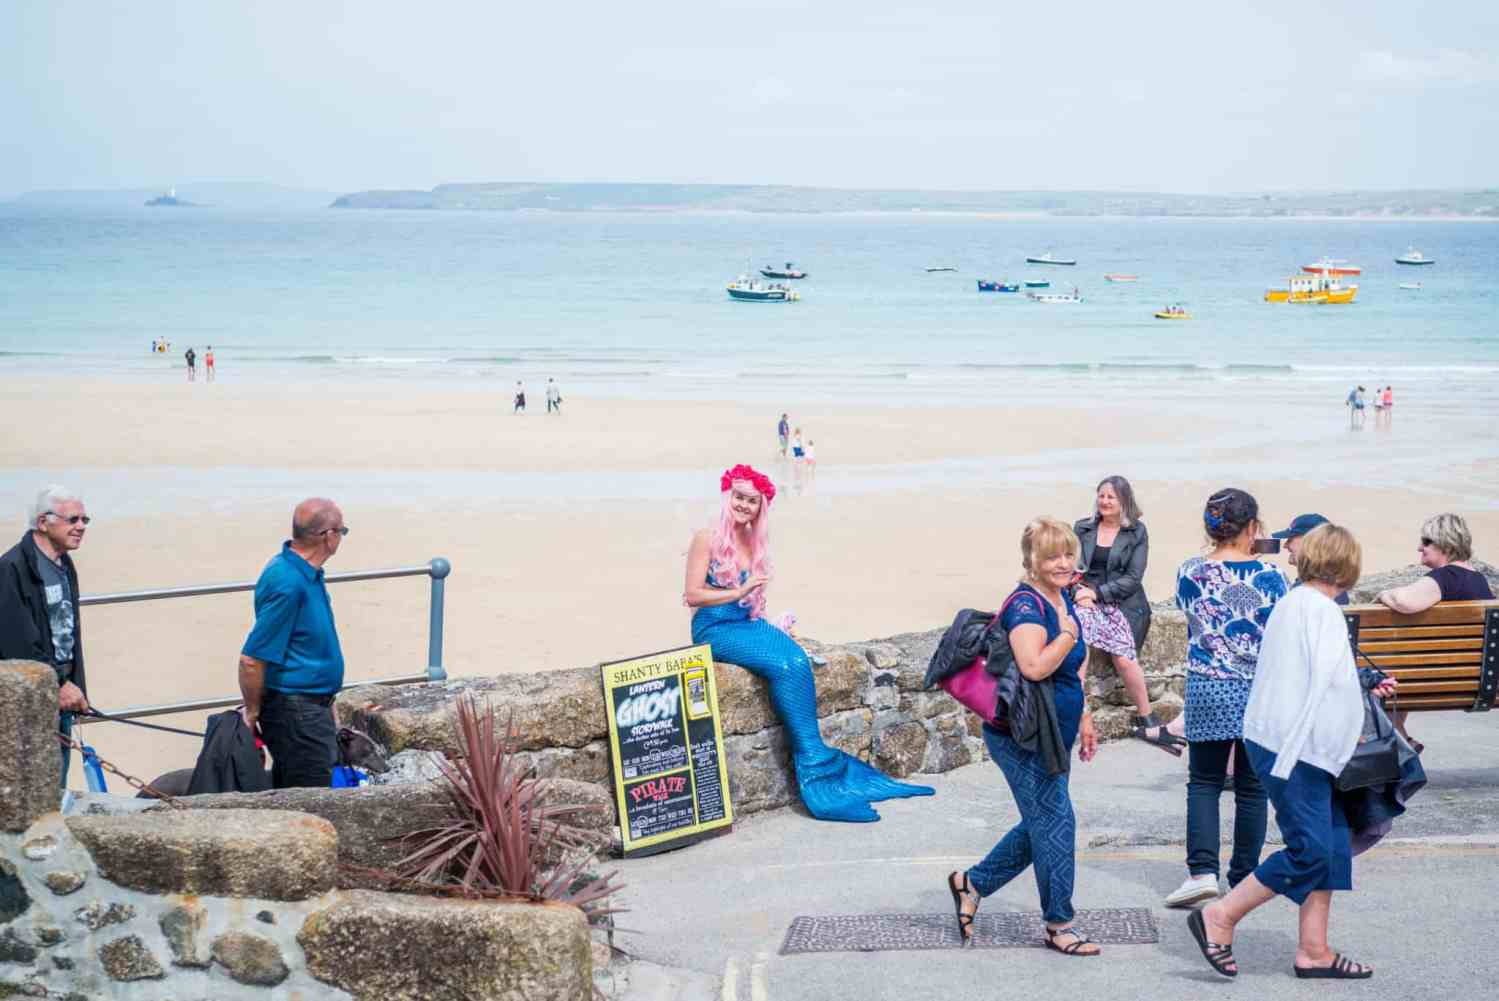 Wedding Photographer in Cornwall - St Ives Mermaid